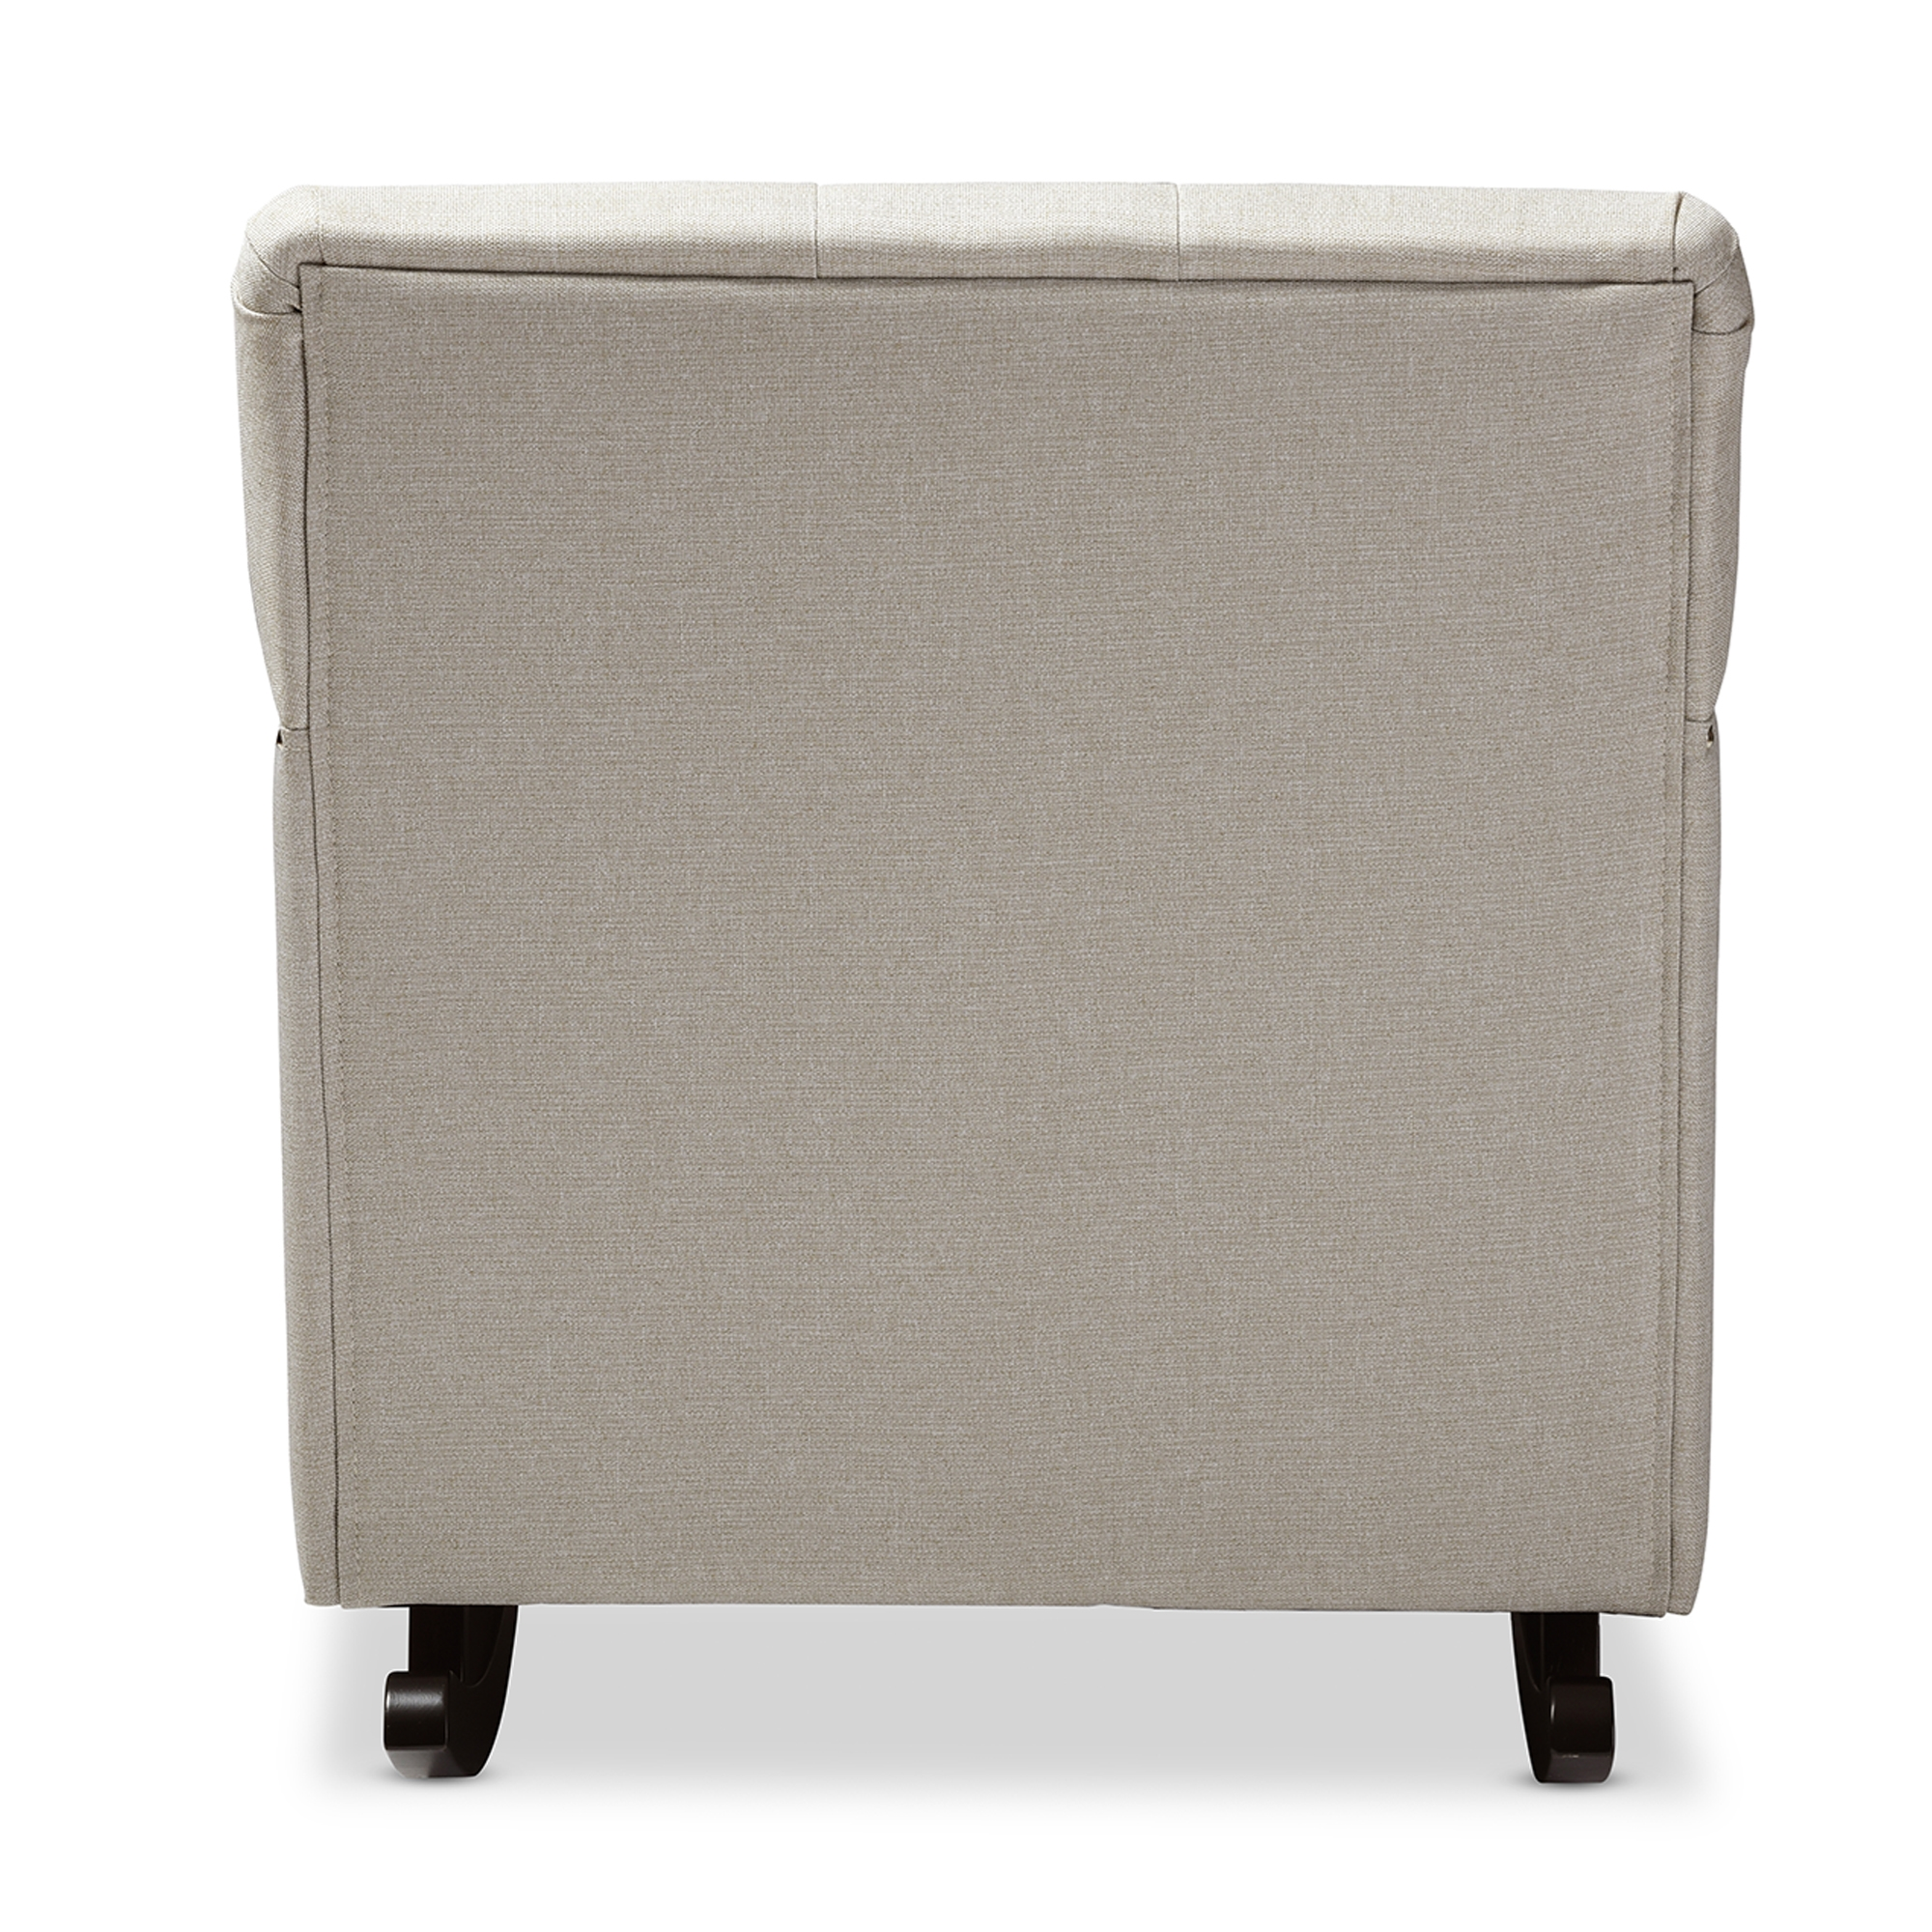 ... Baxton Studio Bethany Modern And Contemporary Light Beige Fabric  Upholstered Button Tufted Rocking Chair ...